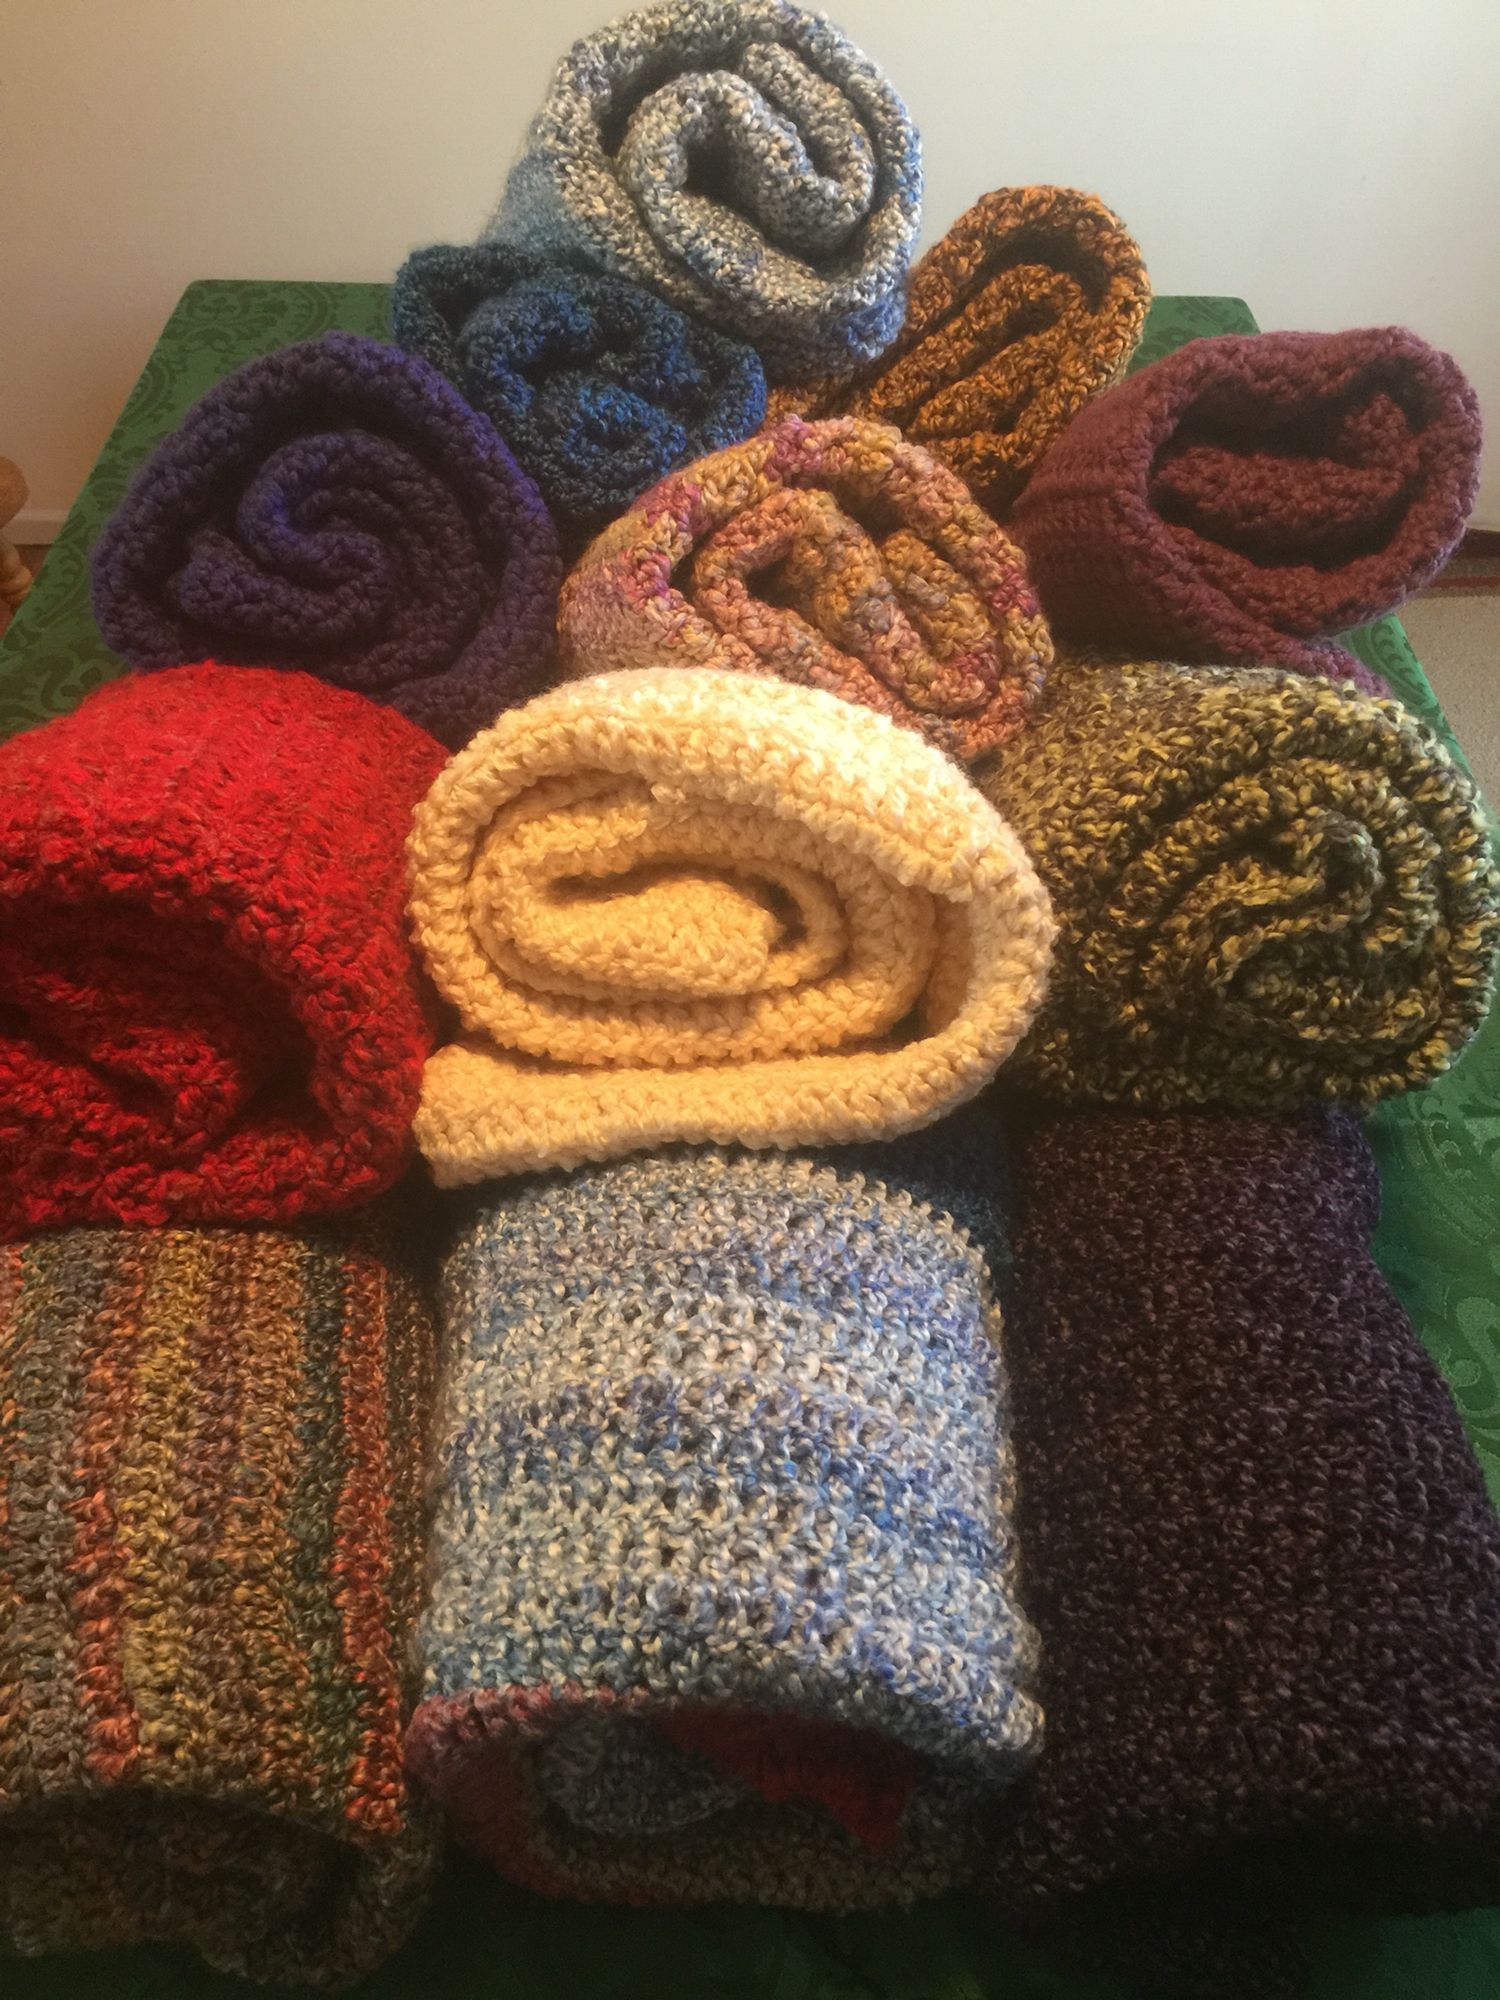 Crochet lap blankets made these for nursing home